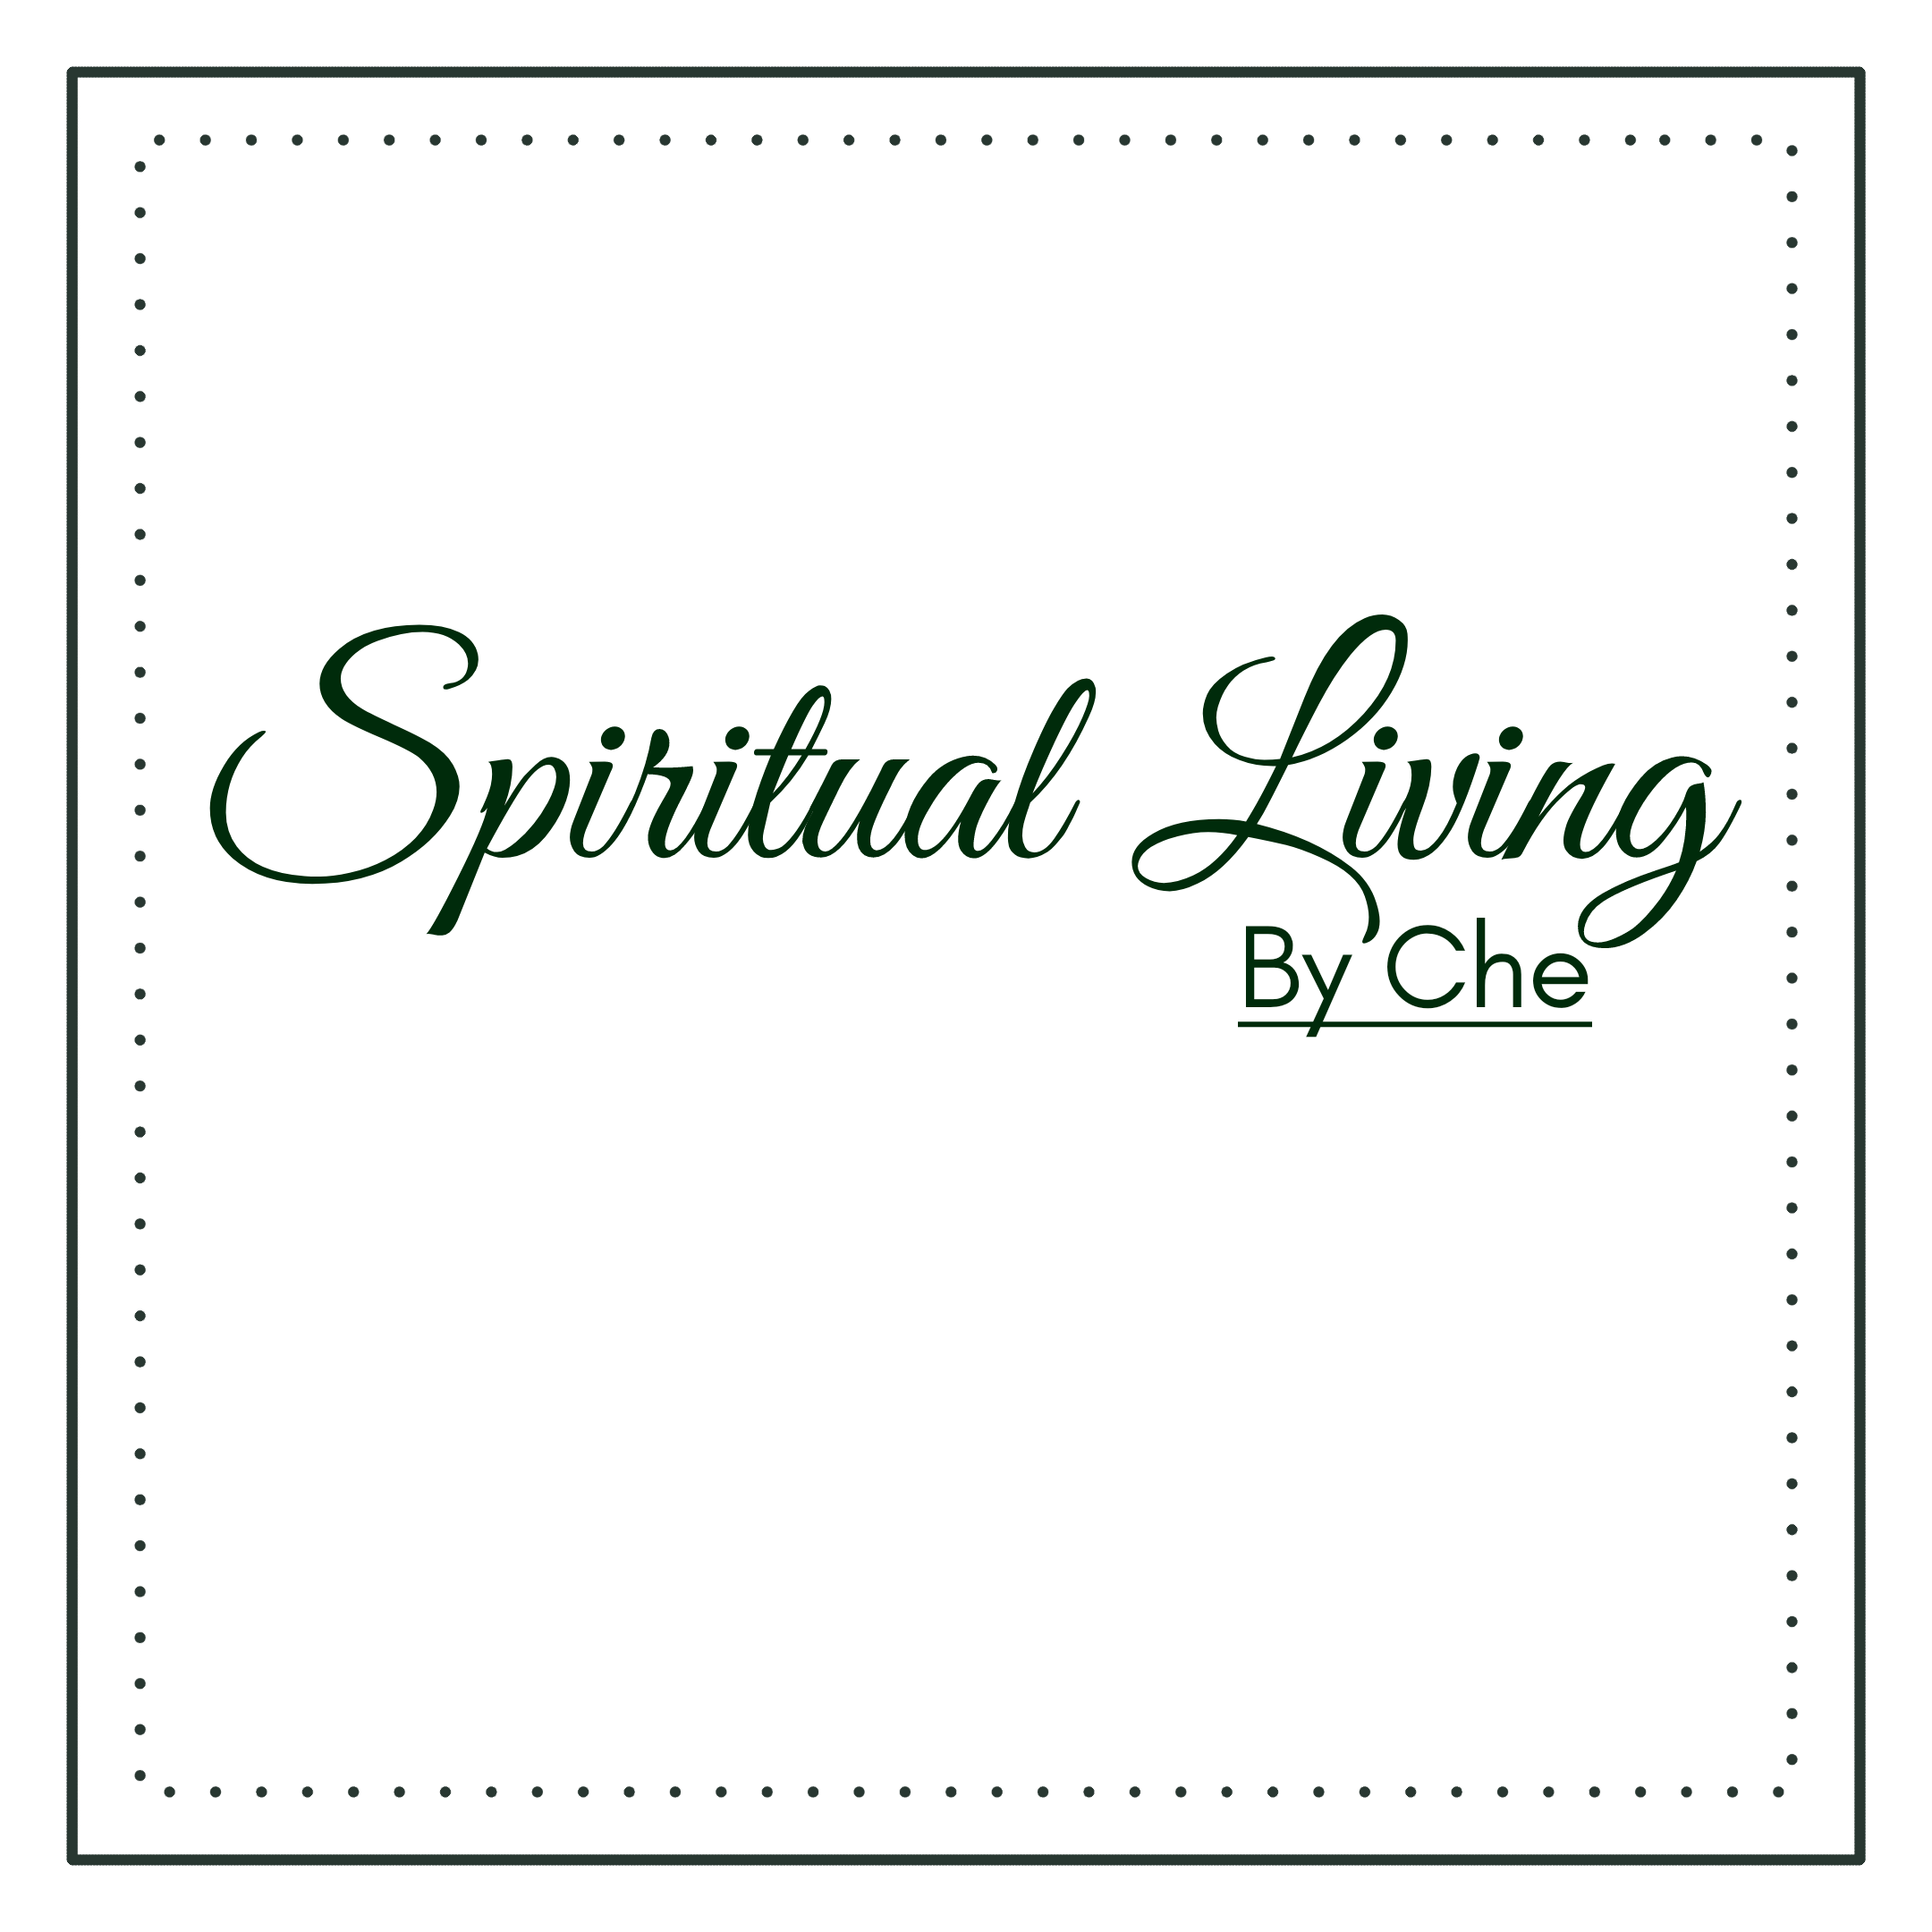 Spiritual Living by Che